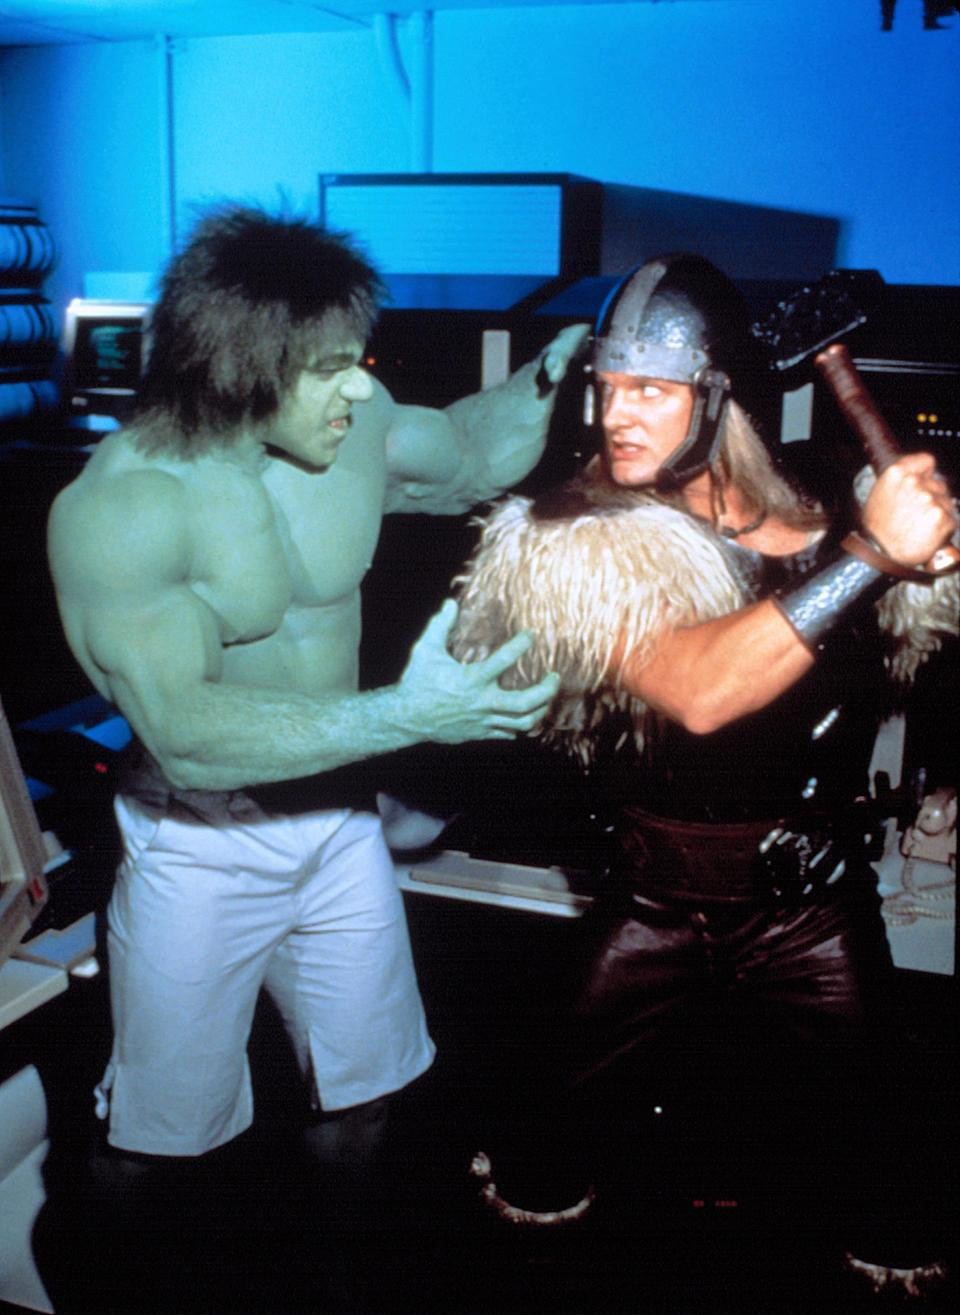 The Incredible Hulk (Lou Ferrigno) meets the Mighty Thor (Eric Allan Kramer) for the first time in live-action form in <em>The Incredible Hulk Returns</em> (Photo: Everett Collection)